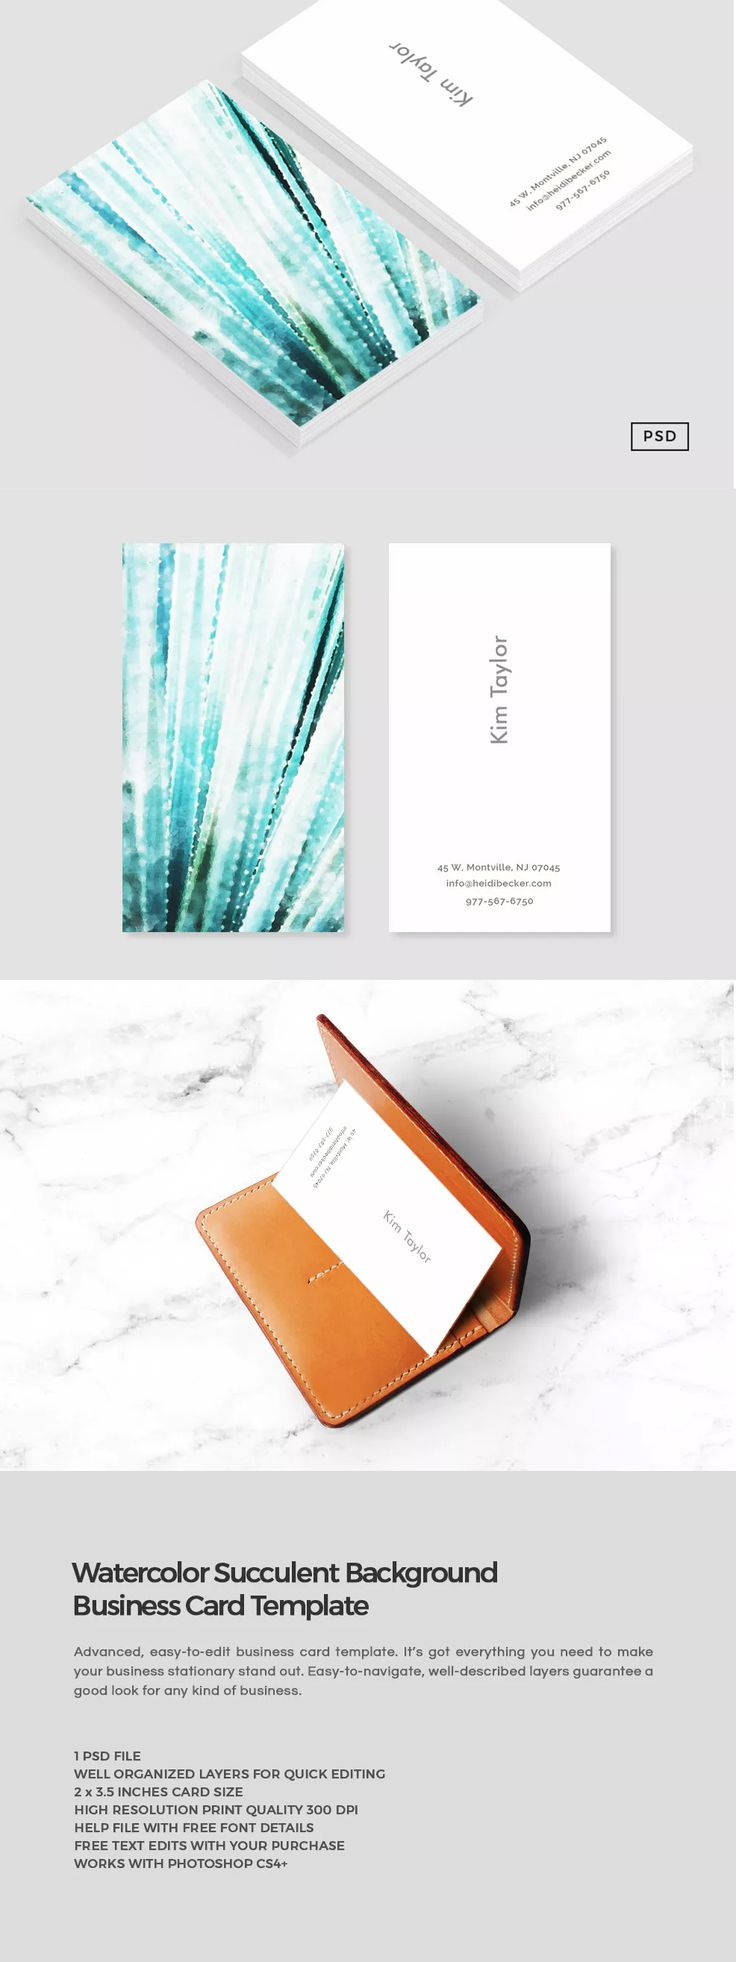 260 best business card templates images on pinterest watercolor succulent business card template psd accmission Image collections